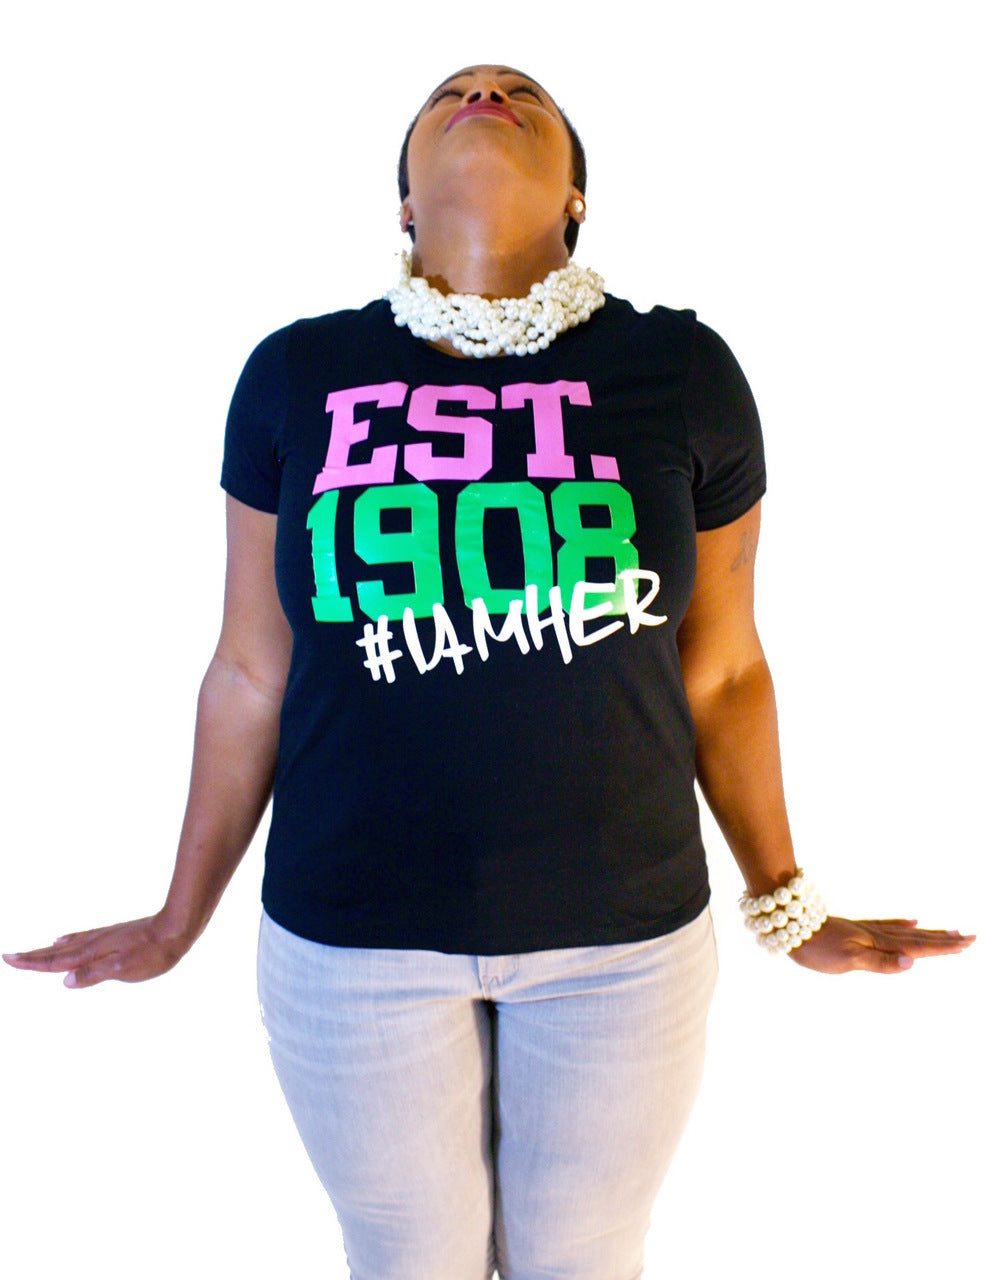 Alpha Kappa Alpha Inspired - EST. 1908 - Tees for Women - I AM HER Apparel, LLC